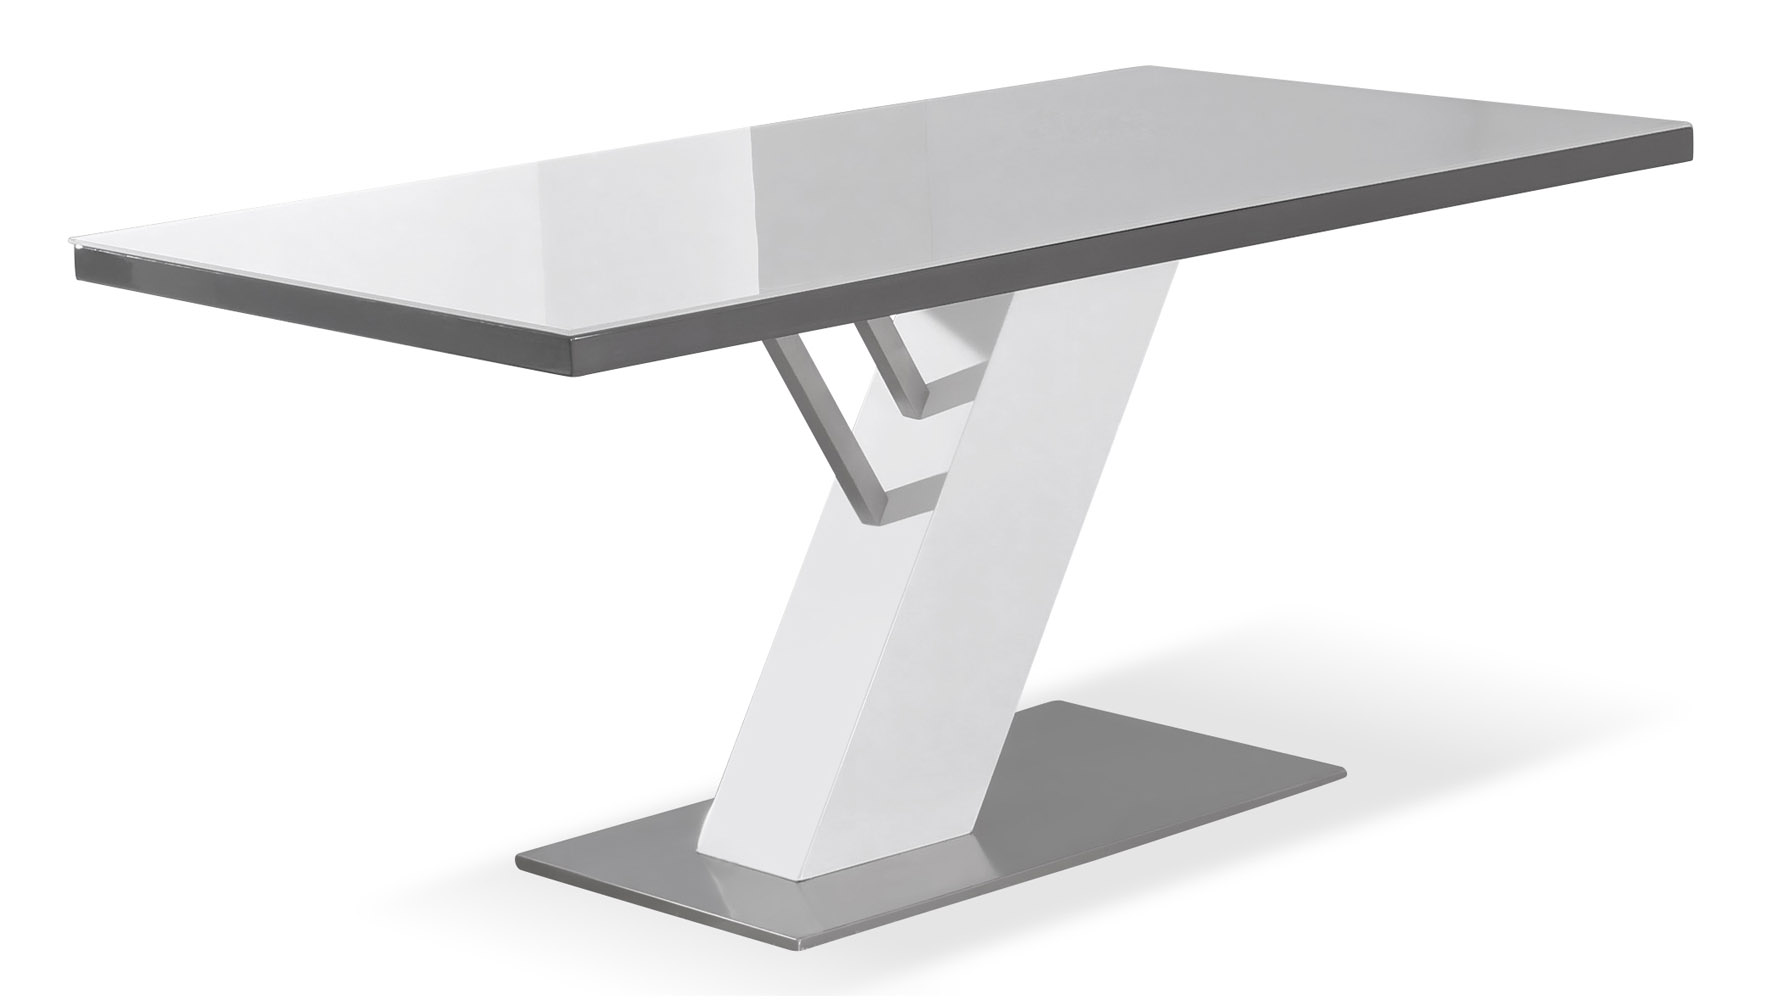 White and Grey Lacquer Top with Stainless Steel Base  : gray lacquer top with stainless steel base modern chevre dining table t9750gy from www.zurifurniture.com size 1778 x 1000 jpeg 100kB